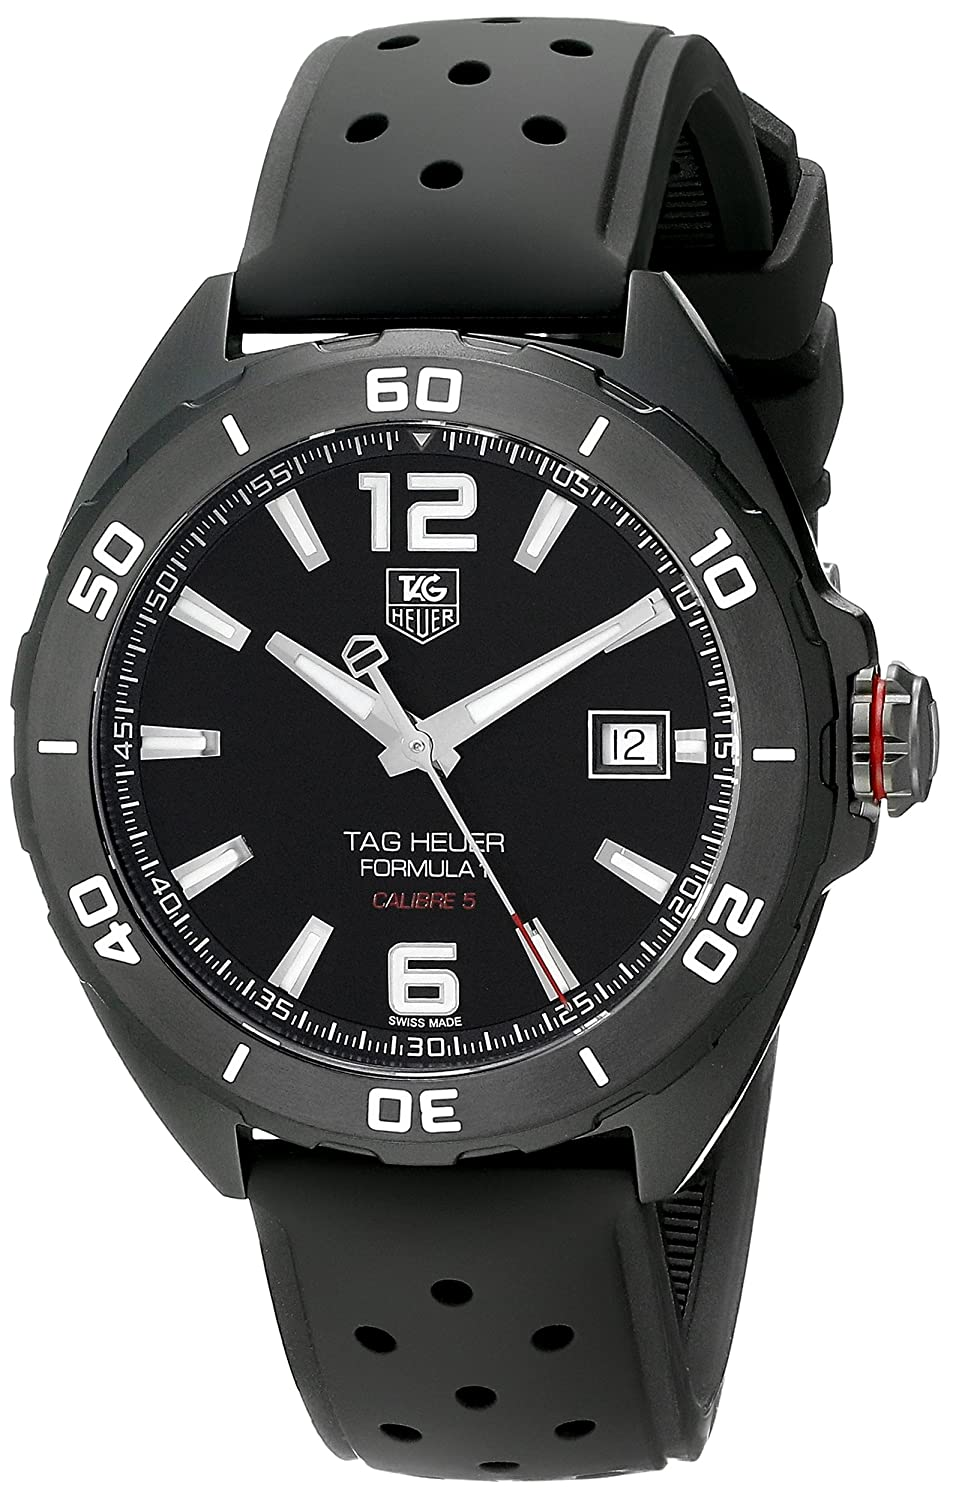 2631fad34a80 Amazon.com  Tag Heuer Formula 1 Calibre 5 Black Titanium Automatic Watch  41mm WAZ2115.FT8023  Tag Heuer  Watches